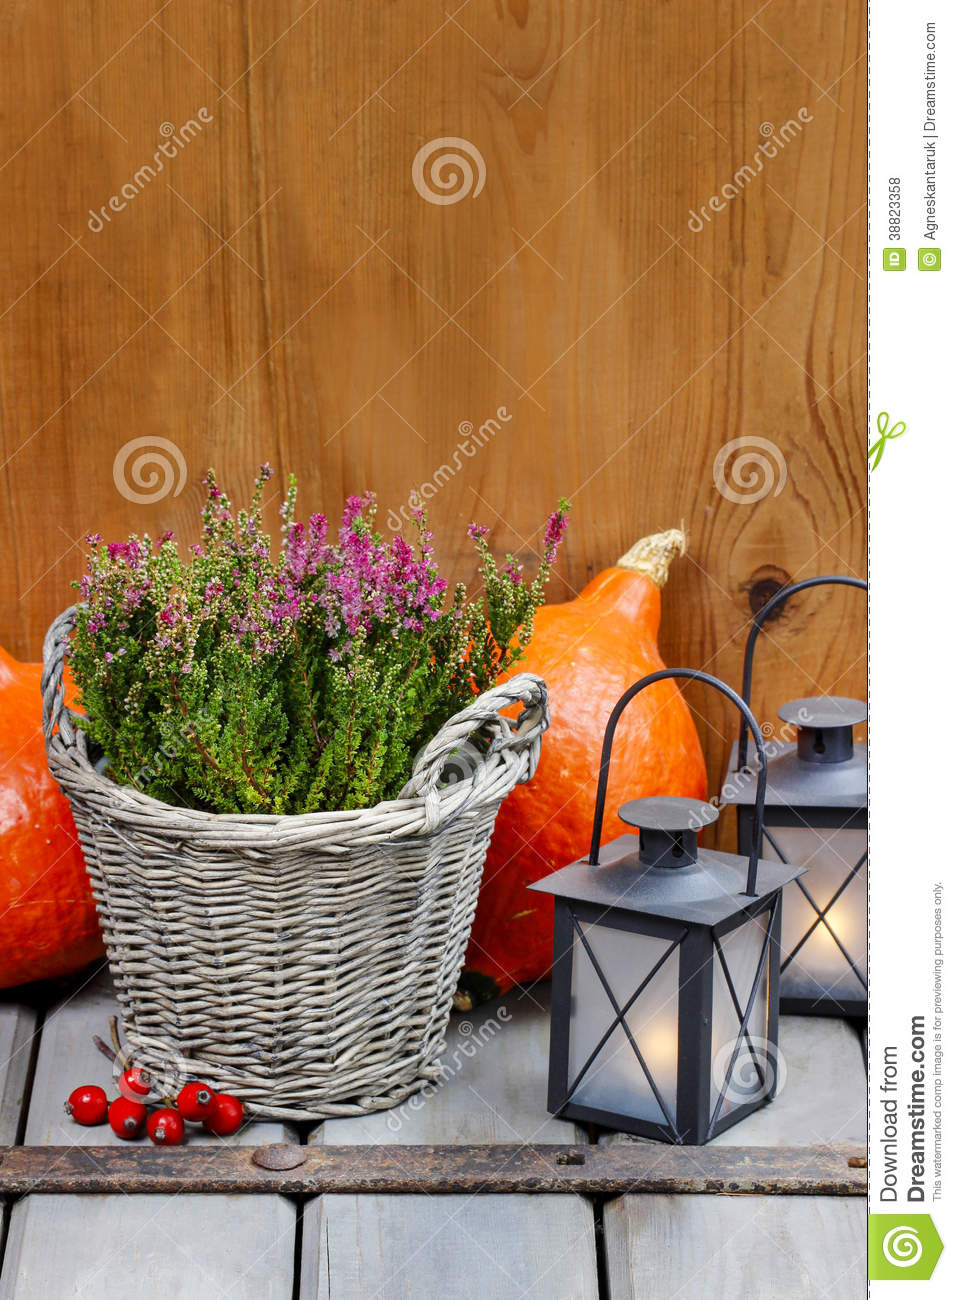 Red Heather In Wicker Basket Stock Photo Image Of Fall Nature